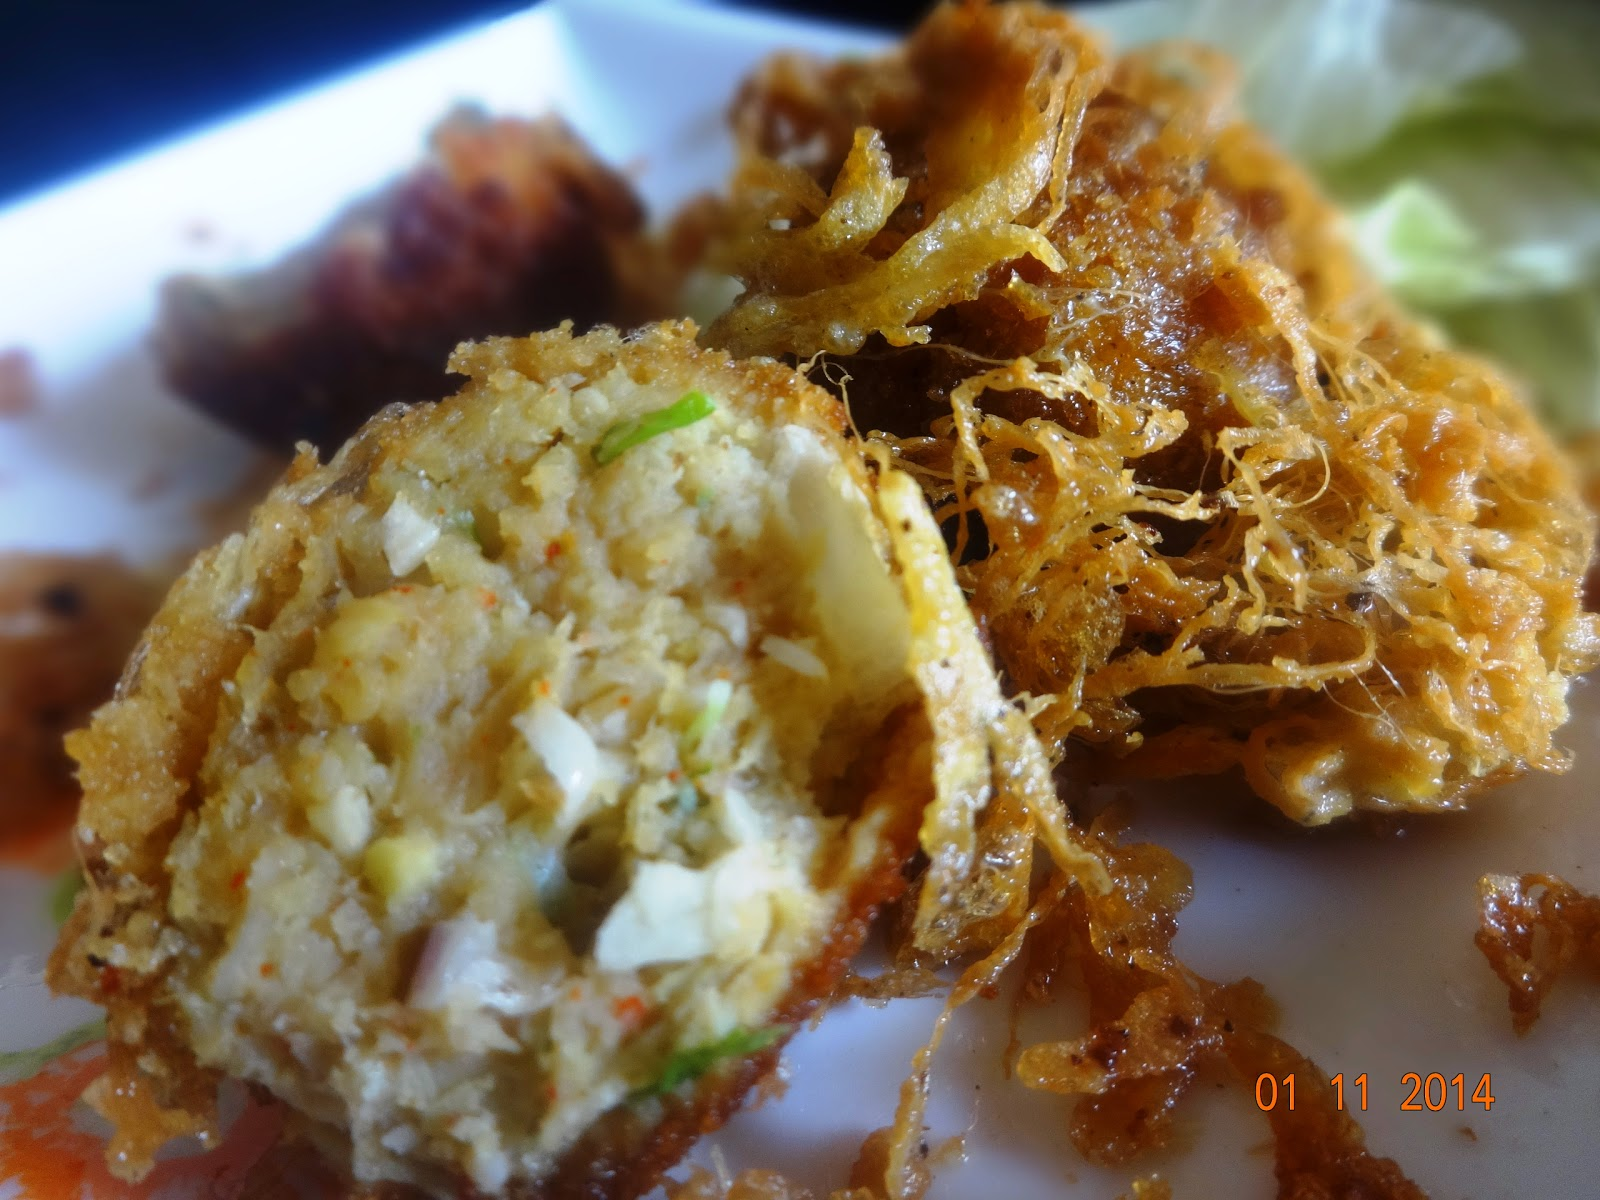 Chicken kobiraji Balls(chicken coverage cutlet)